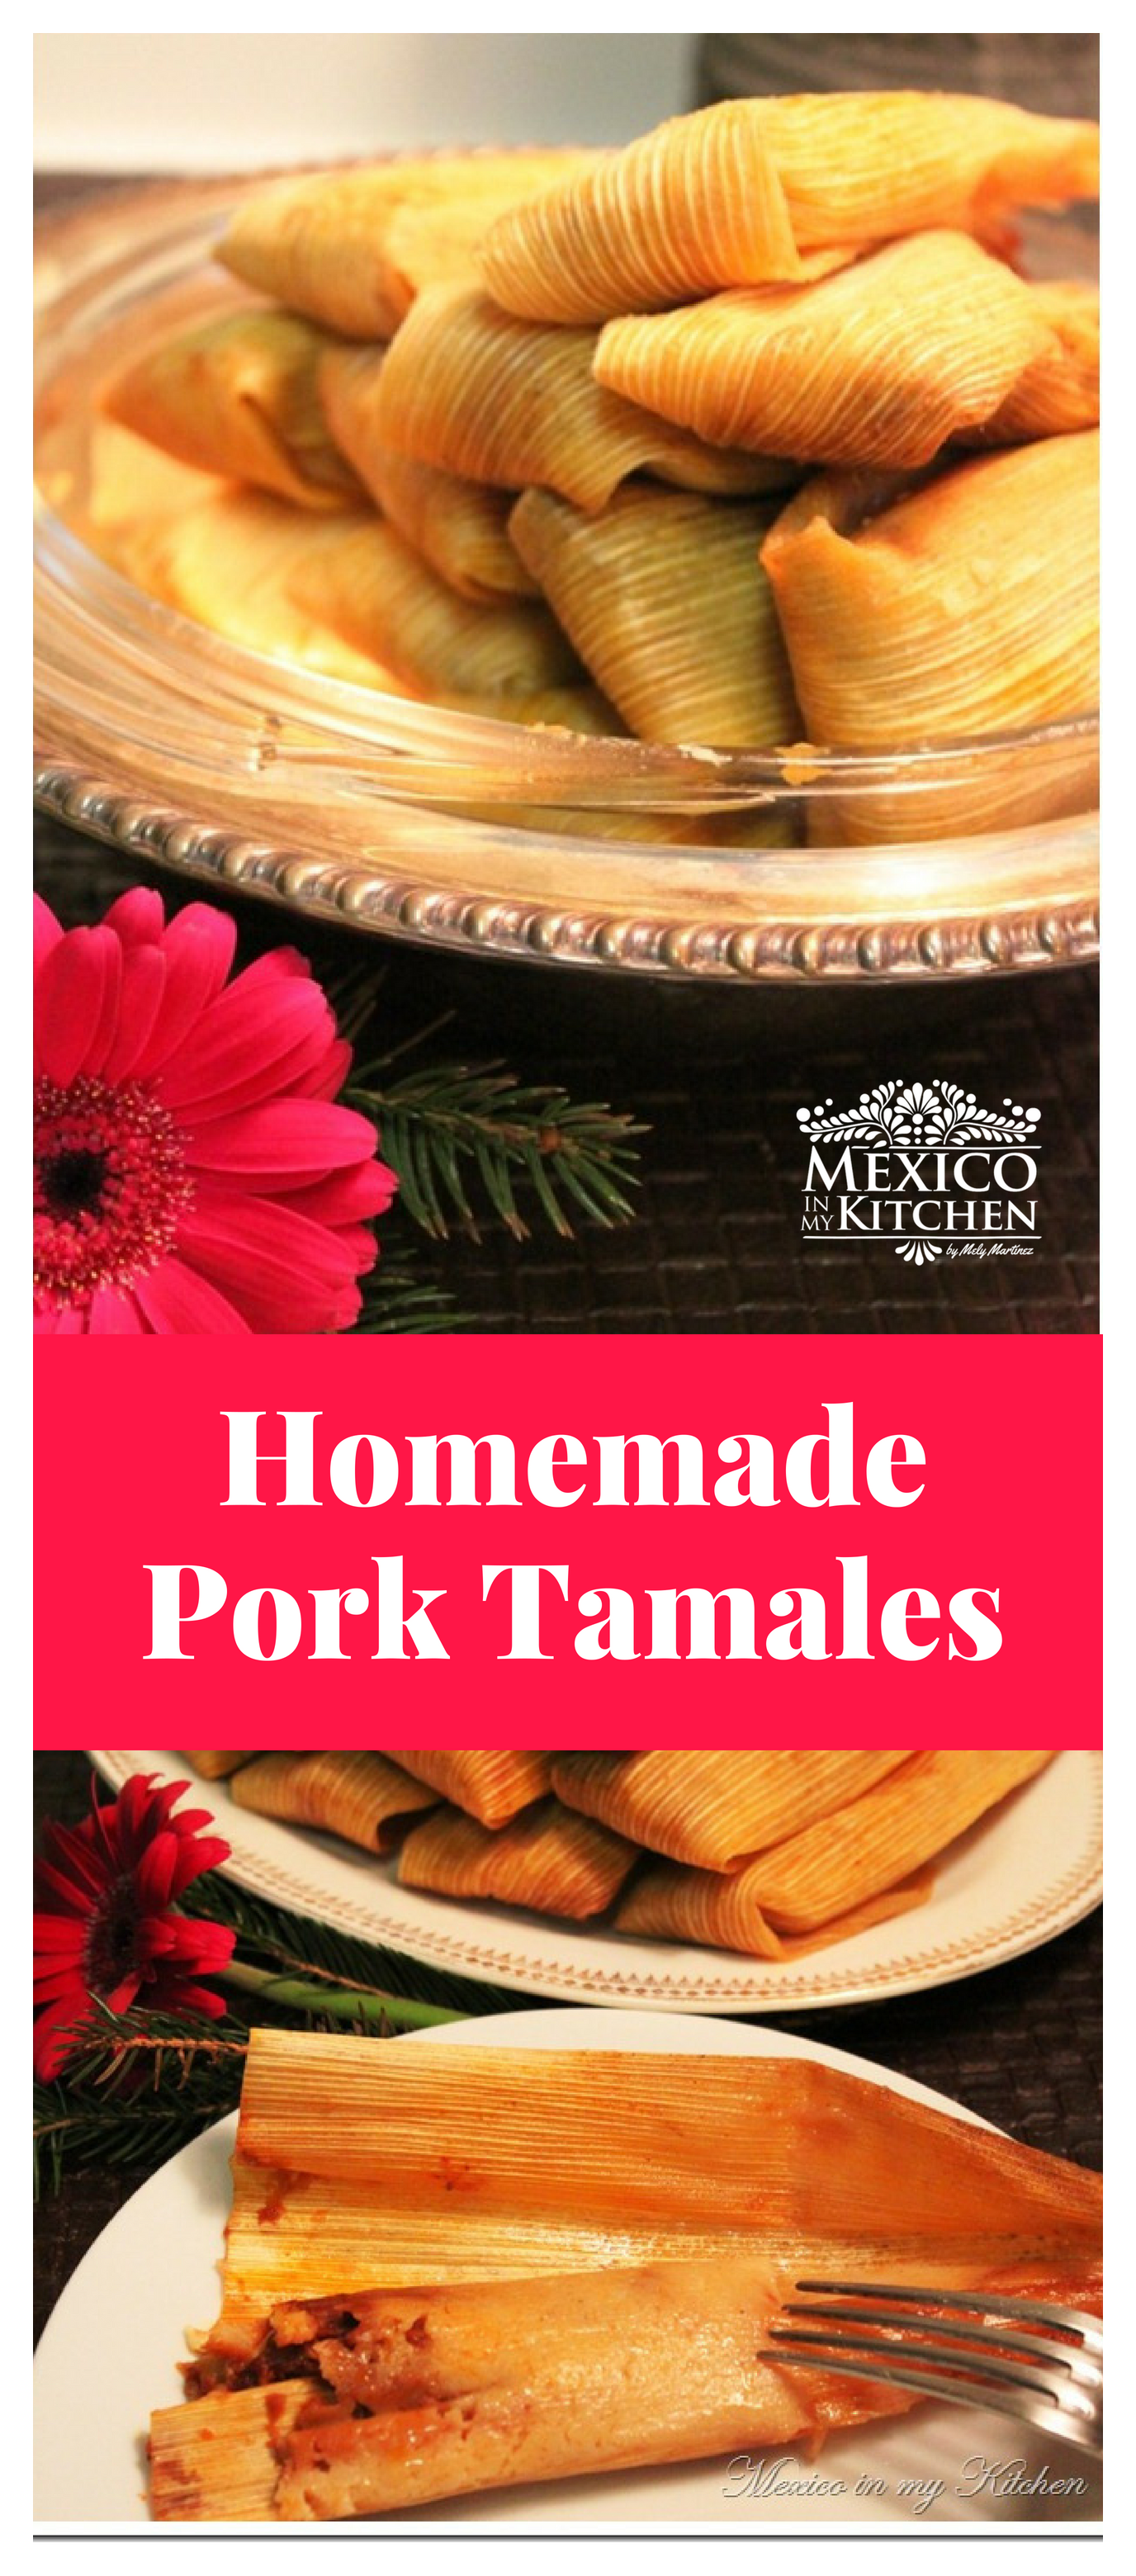 How to make Homemade pork Tamales │ Pork tamales made at home using masa harina are very tasty! These ones are made with pulled pork the Mexican way.